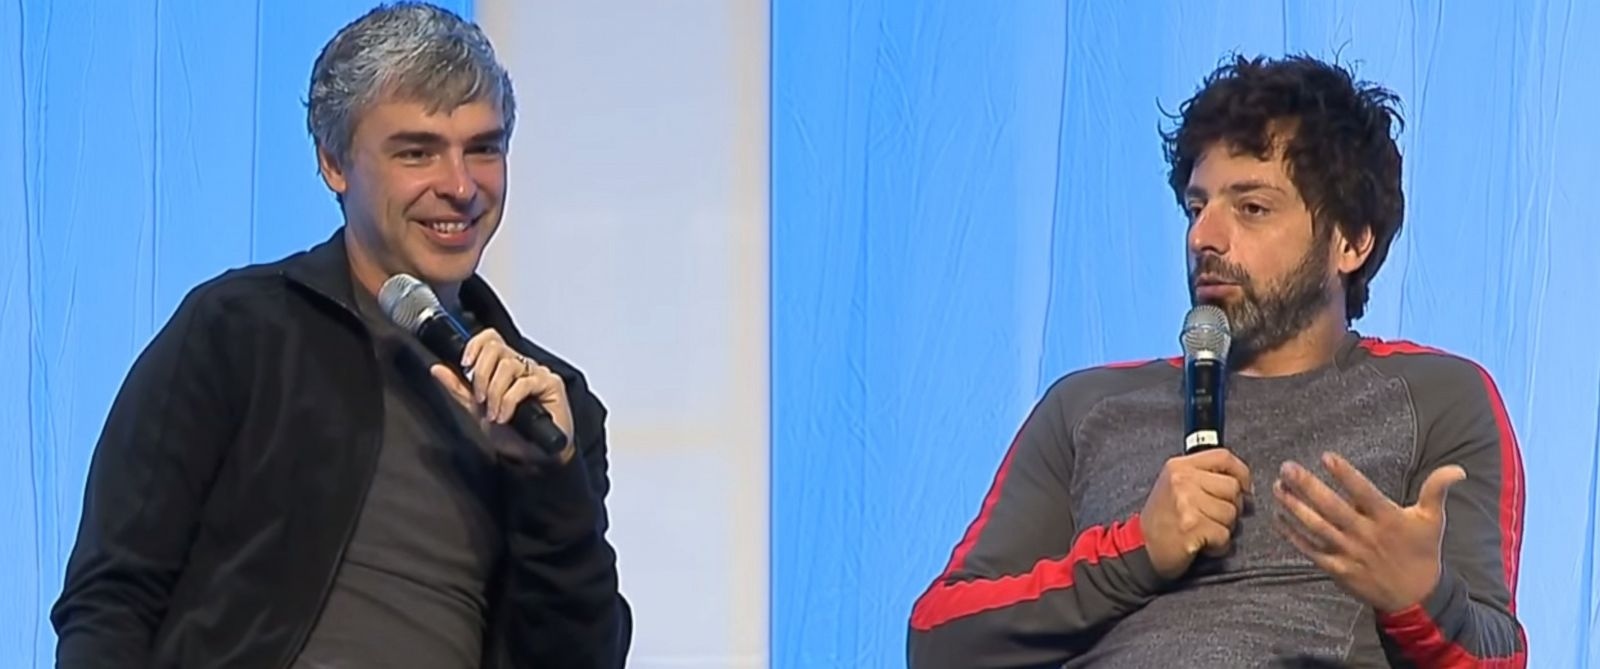 """PHOTO: Google founders Larry Page and Sergey Brin are seen in a video titled, """"Fireside chat with Google co-founders, Larry Page and Sergey Brin with Vinod Khosla"""" posted to YouTube on July 3, 2014."""